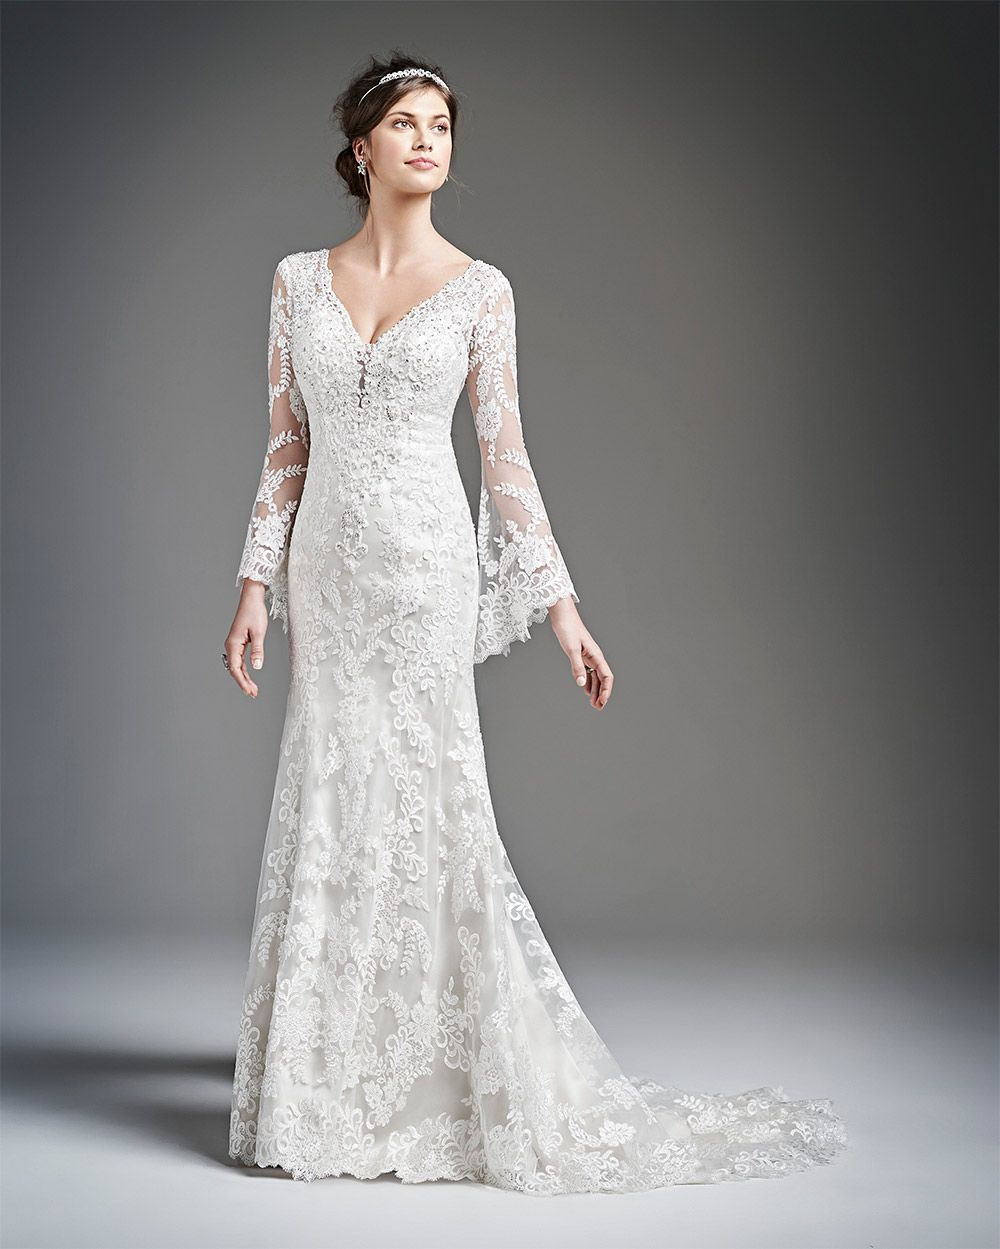 Wedding Dresses for Older Brides | When someday comes ...